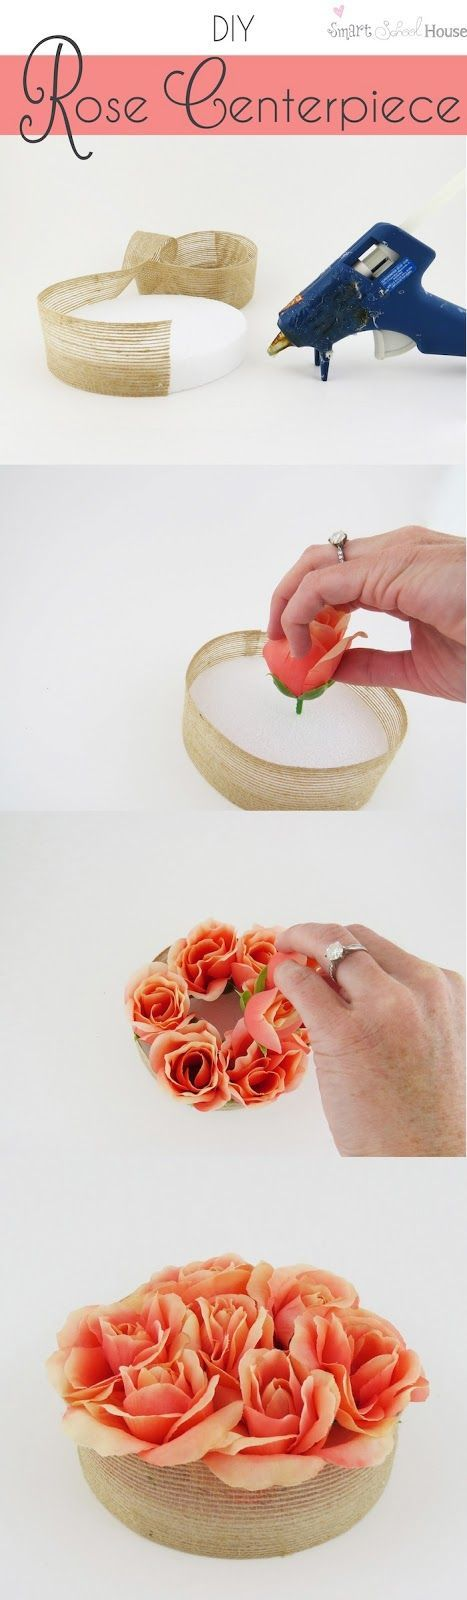 Simple Rose Centerpiece DIY. Pinned by Afloral.com from http://www.smartschoolhouse.com/crafts-and-diy/diy-rose-centerpiece ~Find these supplies at Afloral.com for your simple, affordable DIY wedding ideas.: